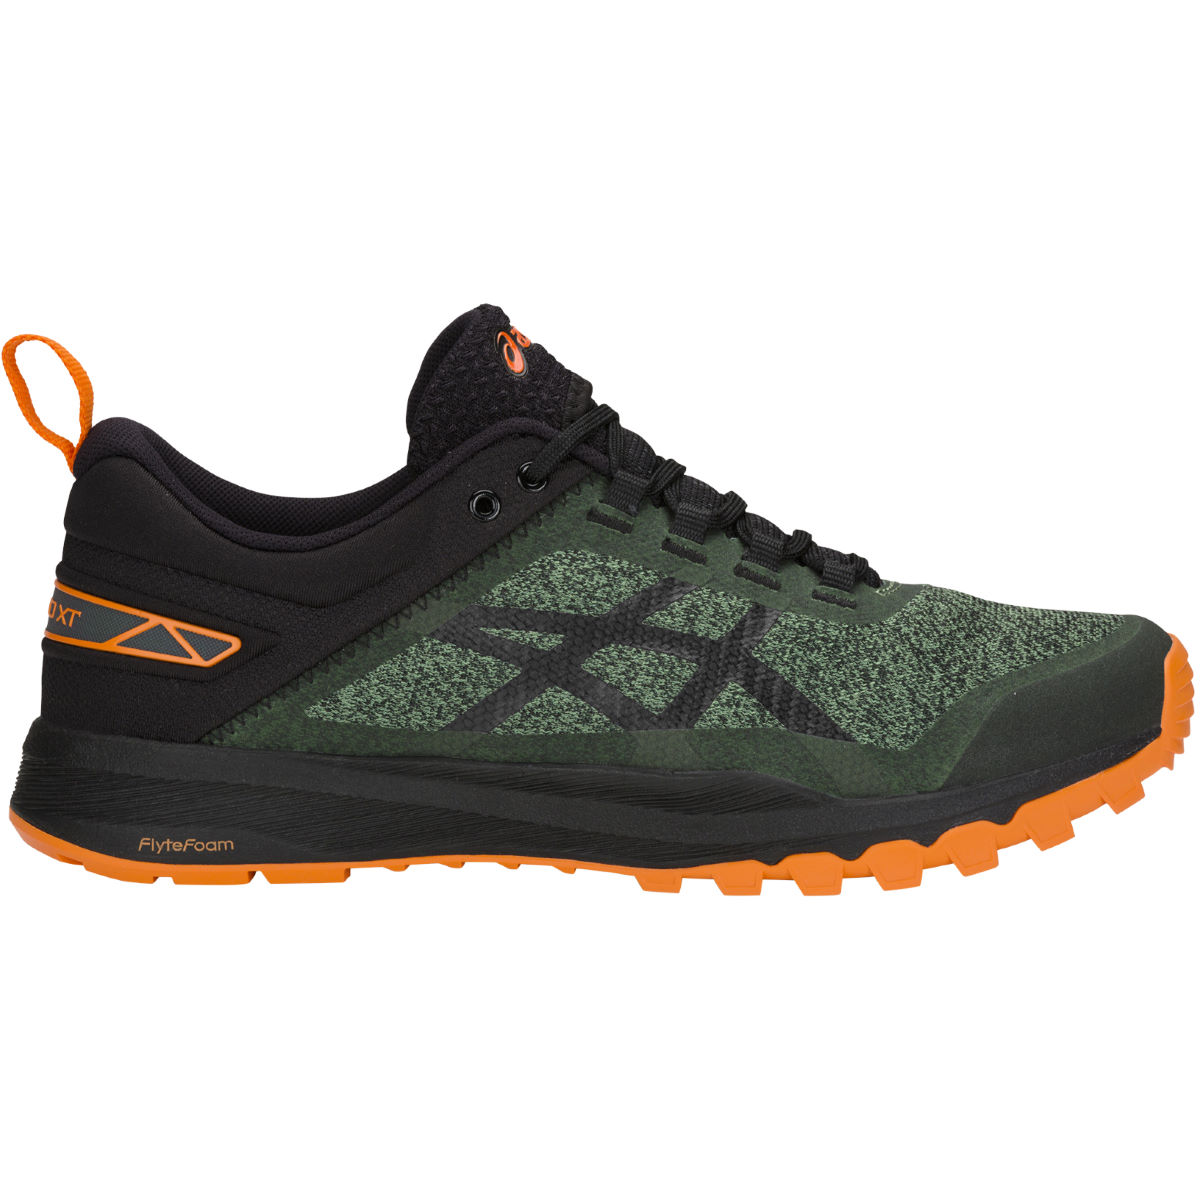 Chaussures Asics Gecko XT - UK 10 Cedar Green/Black